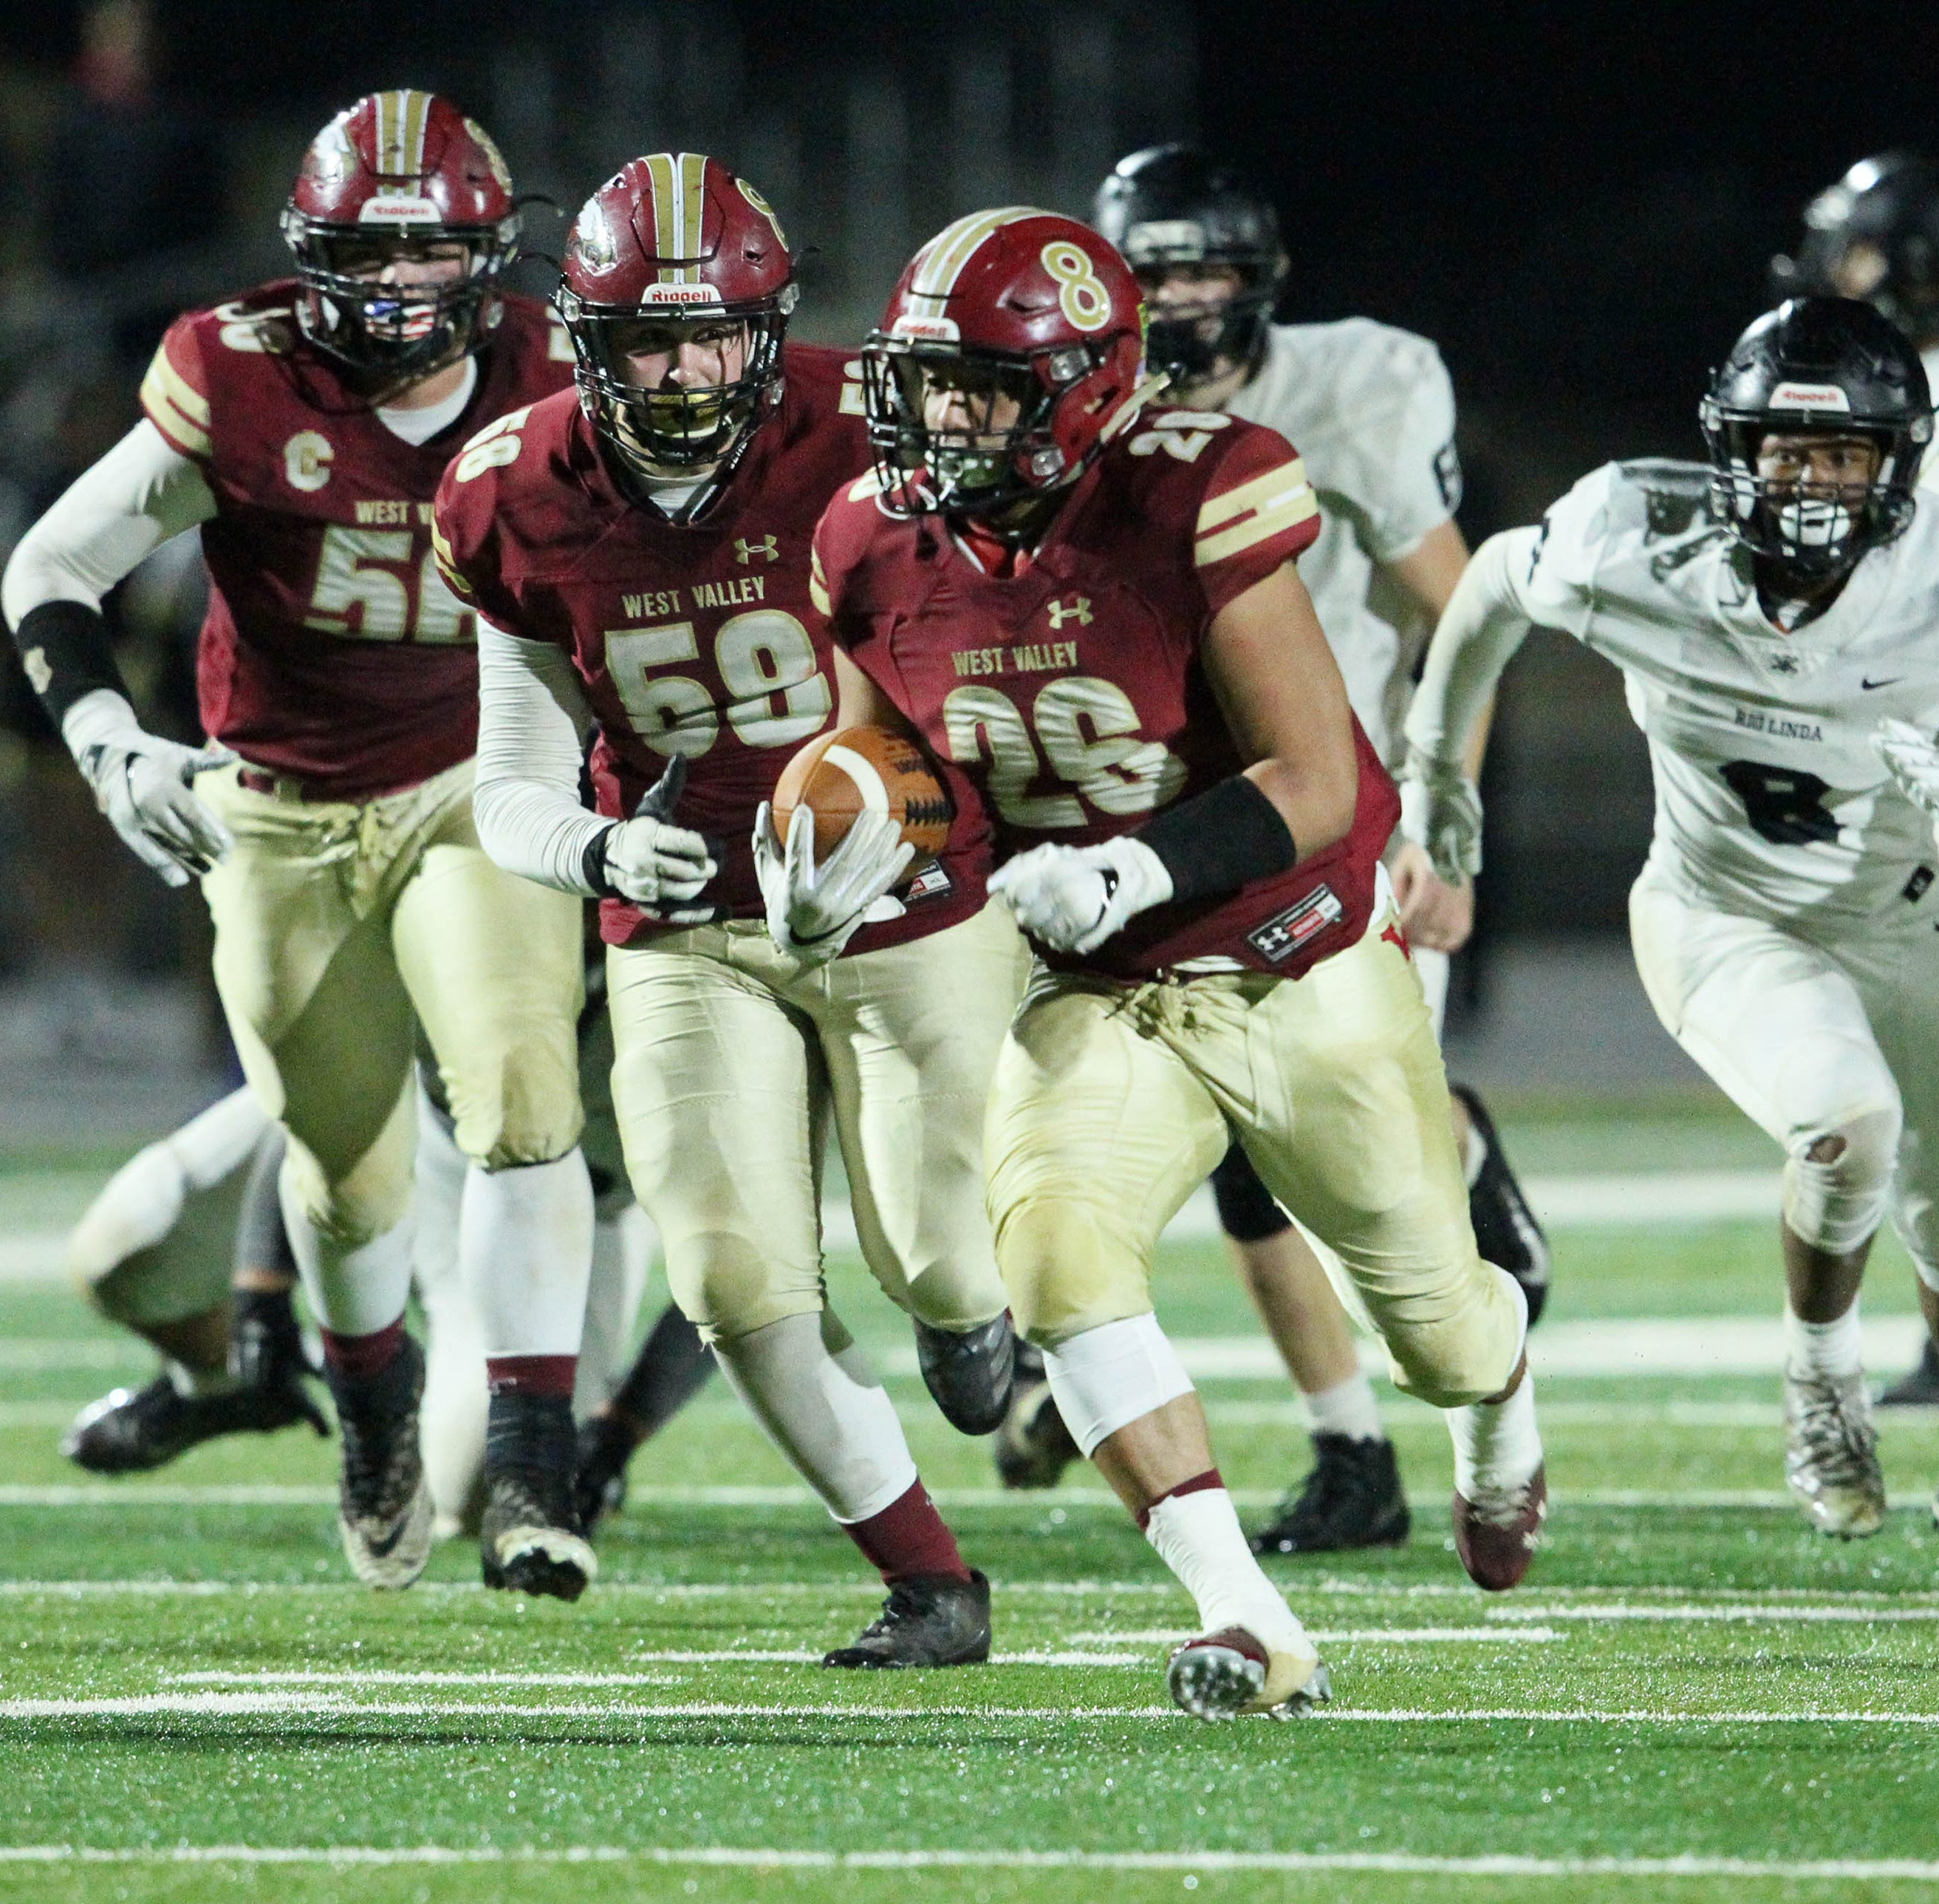 West Valley's storybook season ends in NorCal regional with 21-13 loss to Rio Linda